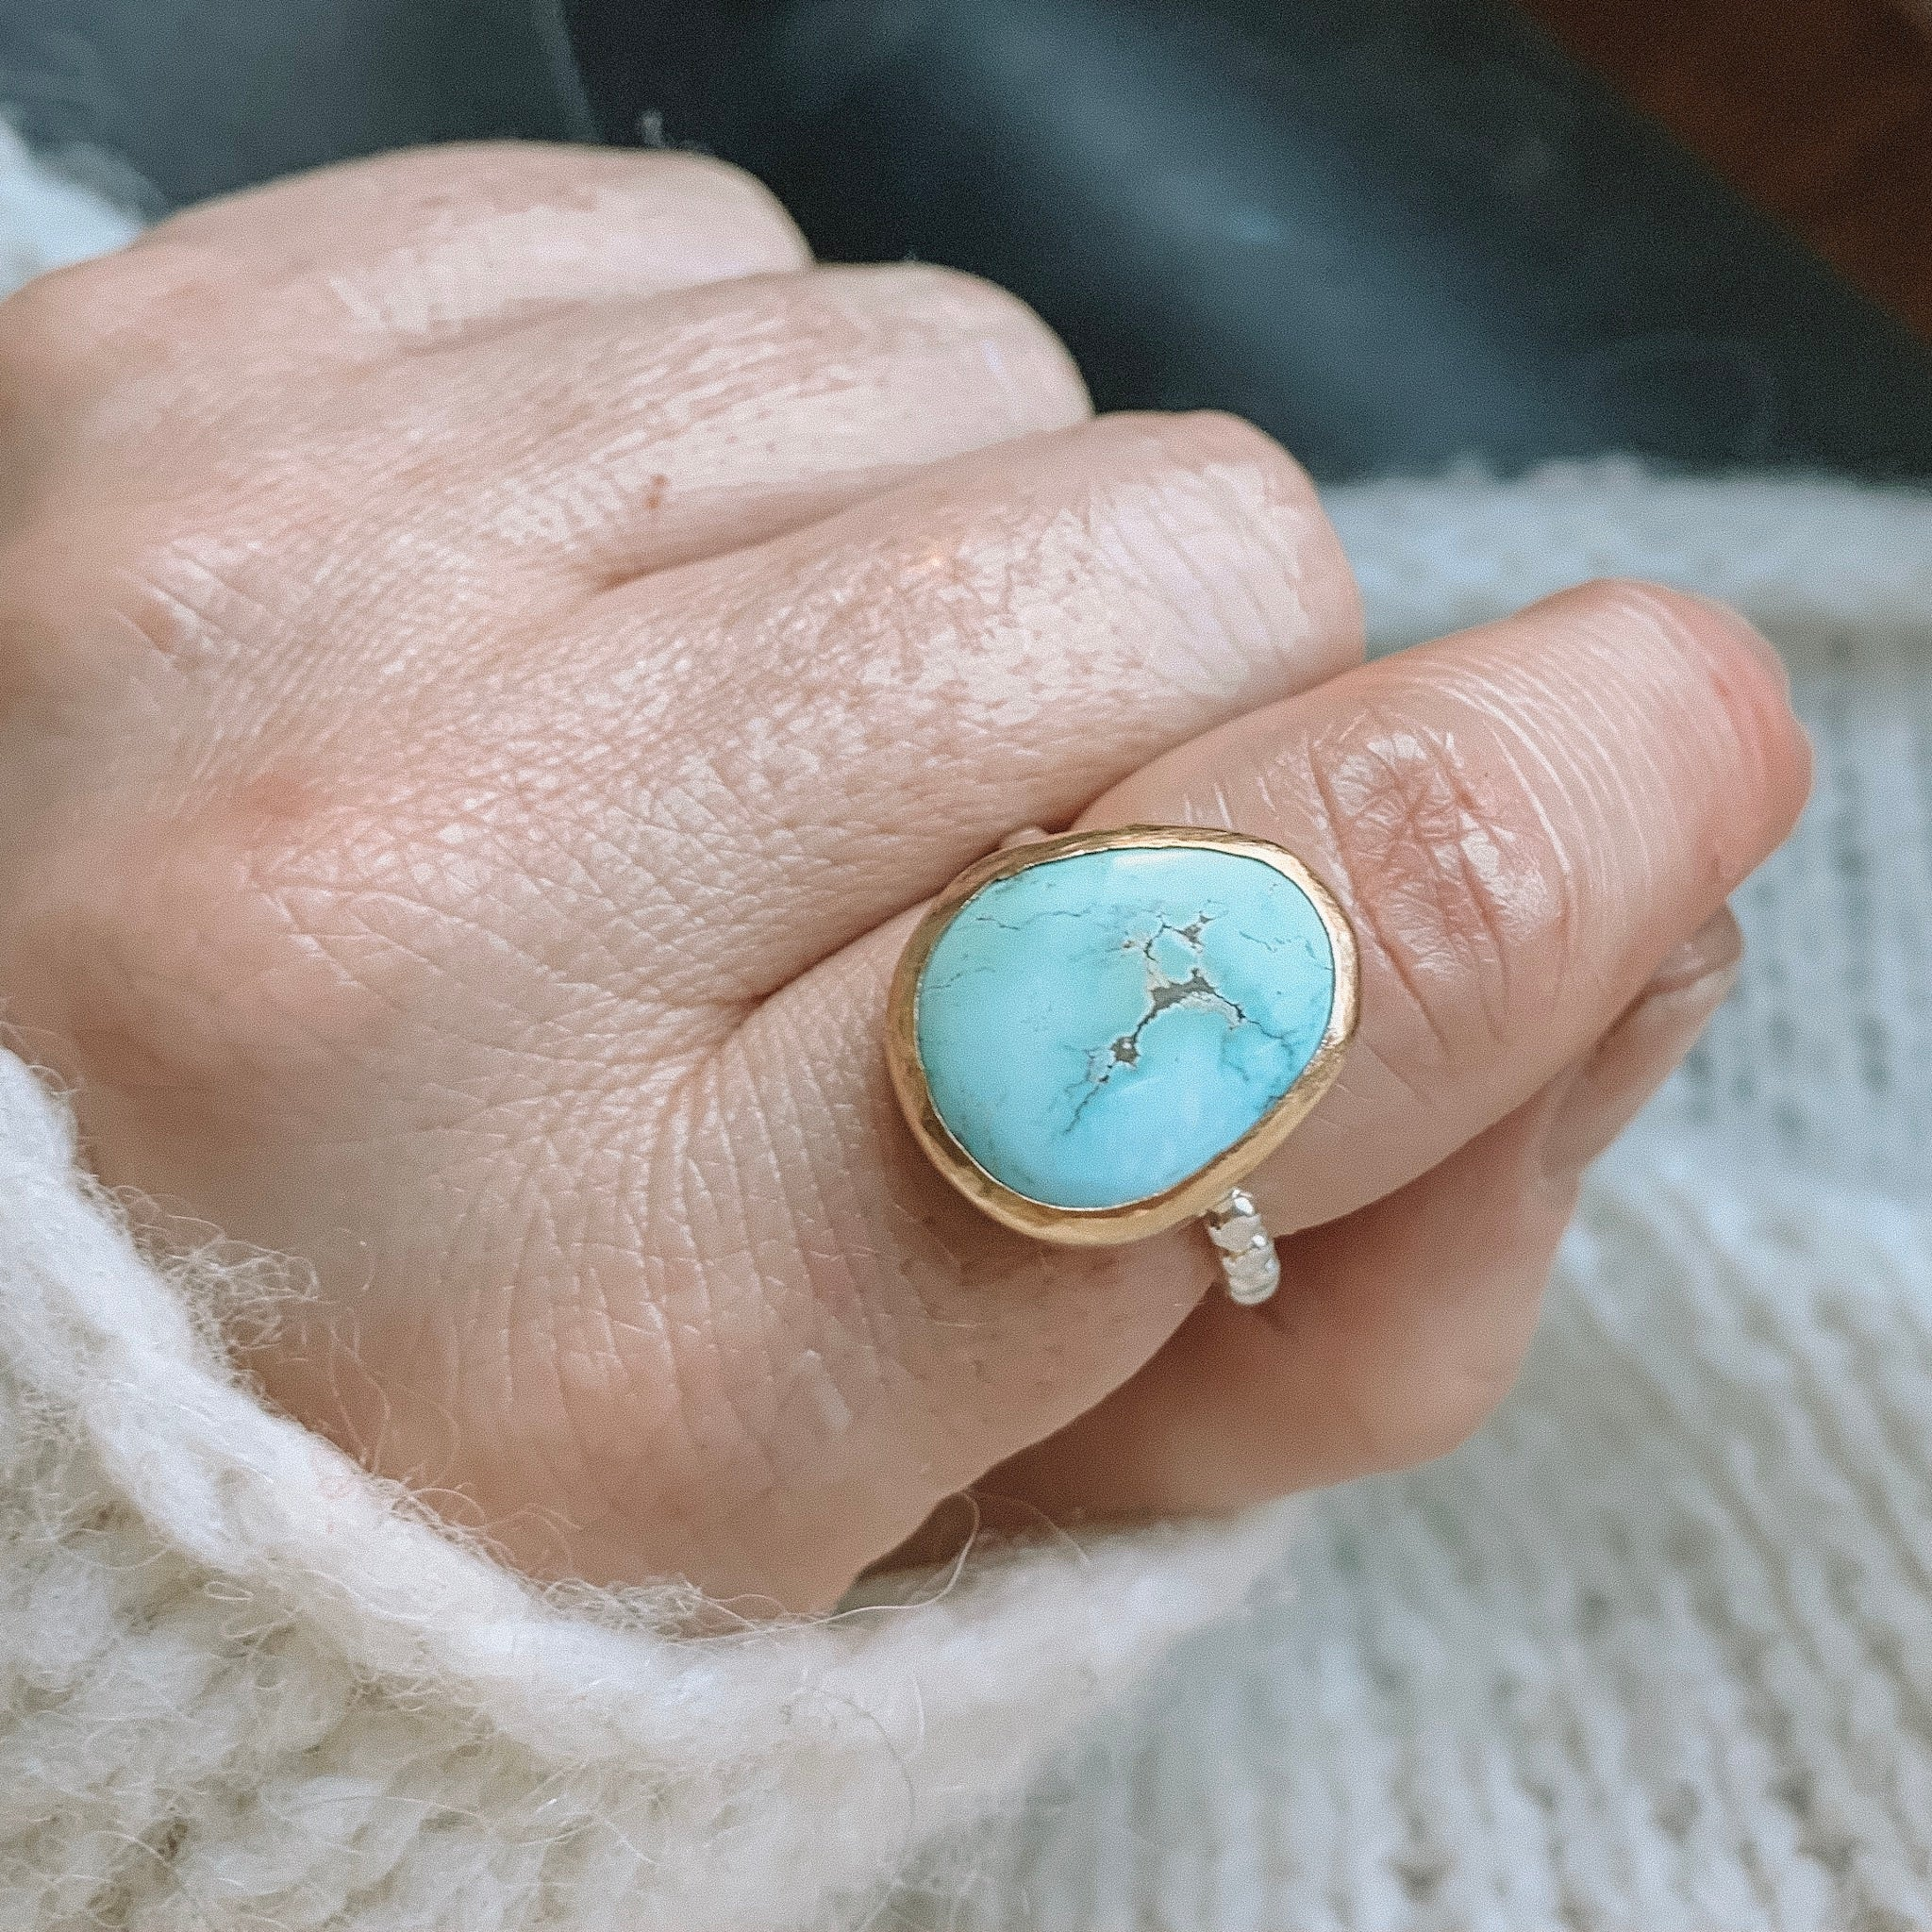 Medium ring -gold- size 8.5